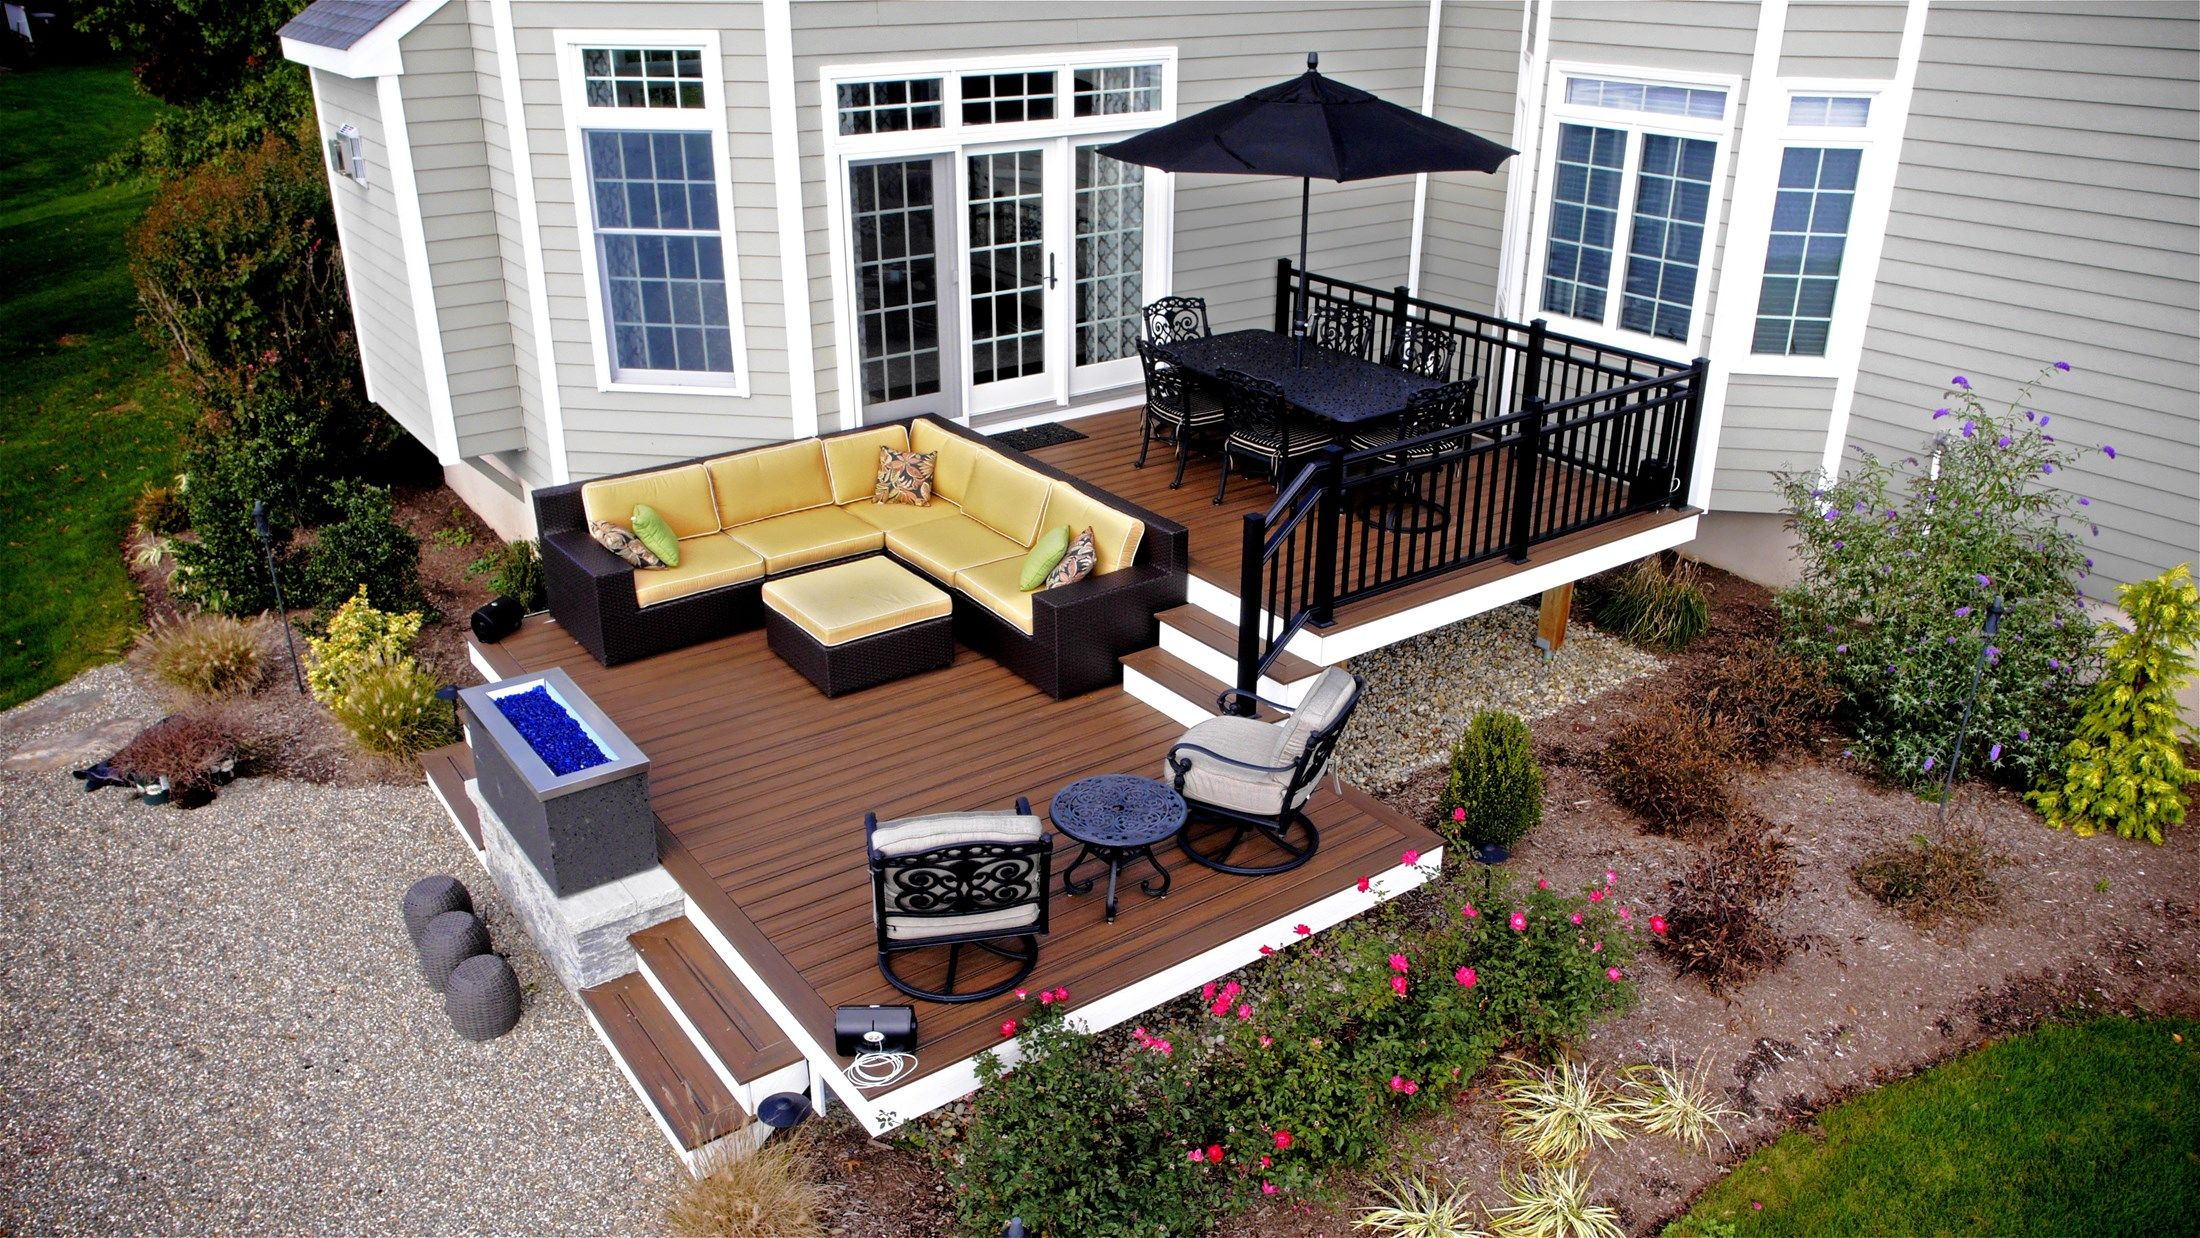 Deckscom 10 Tips For Designing A Great Deck